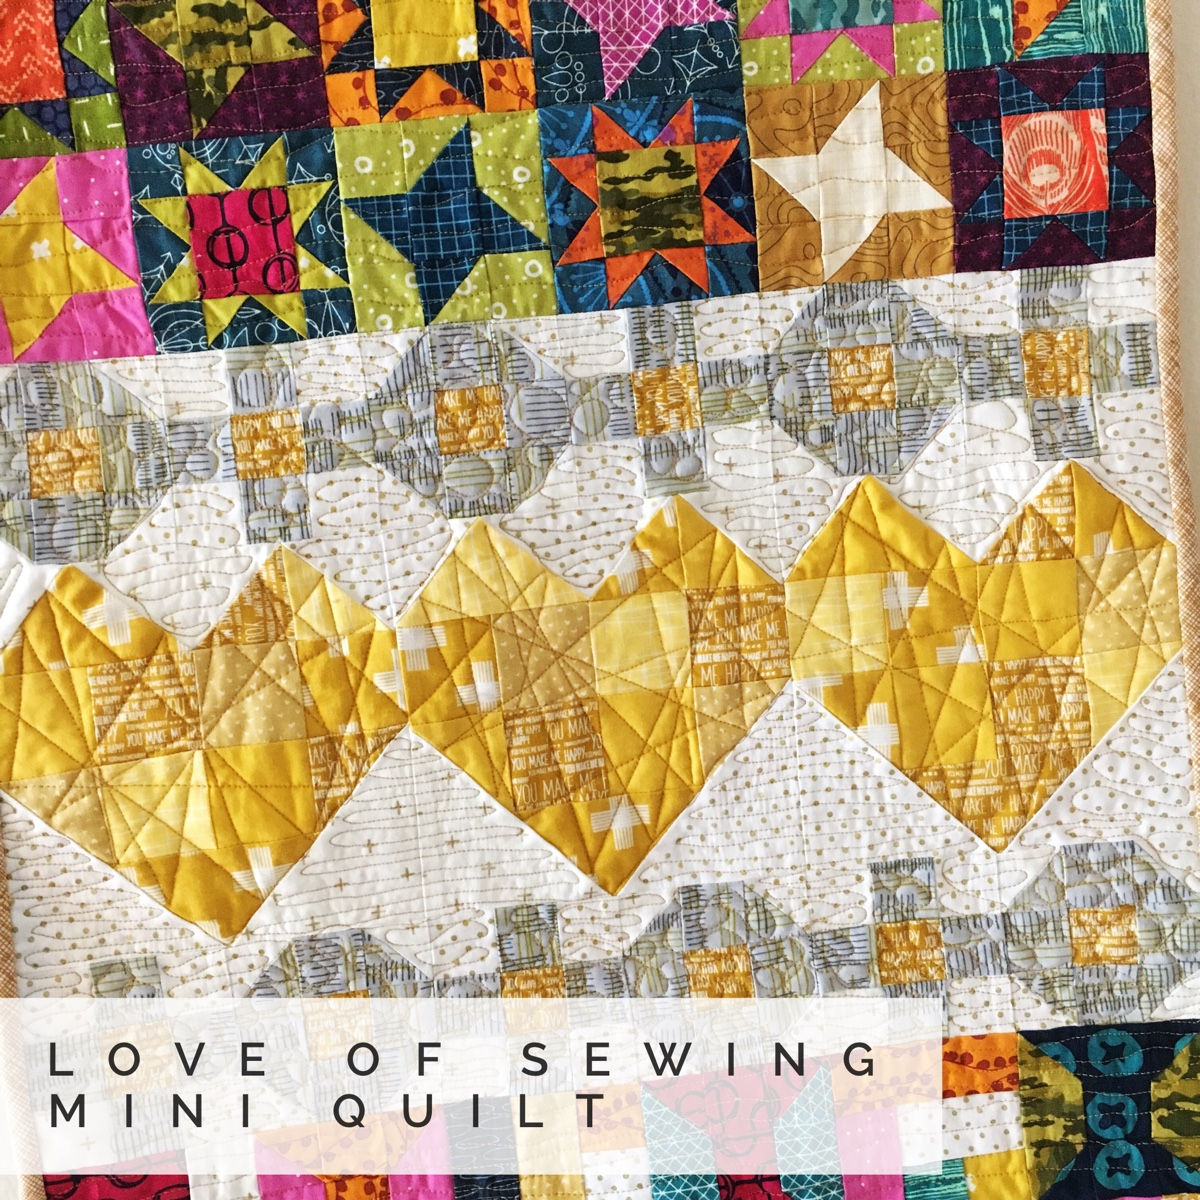 Love of Sewing Challenge – Free Mini Quilt Tutorial!